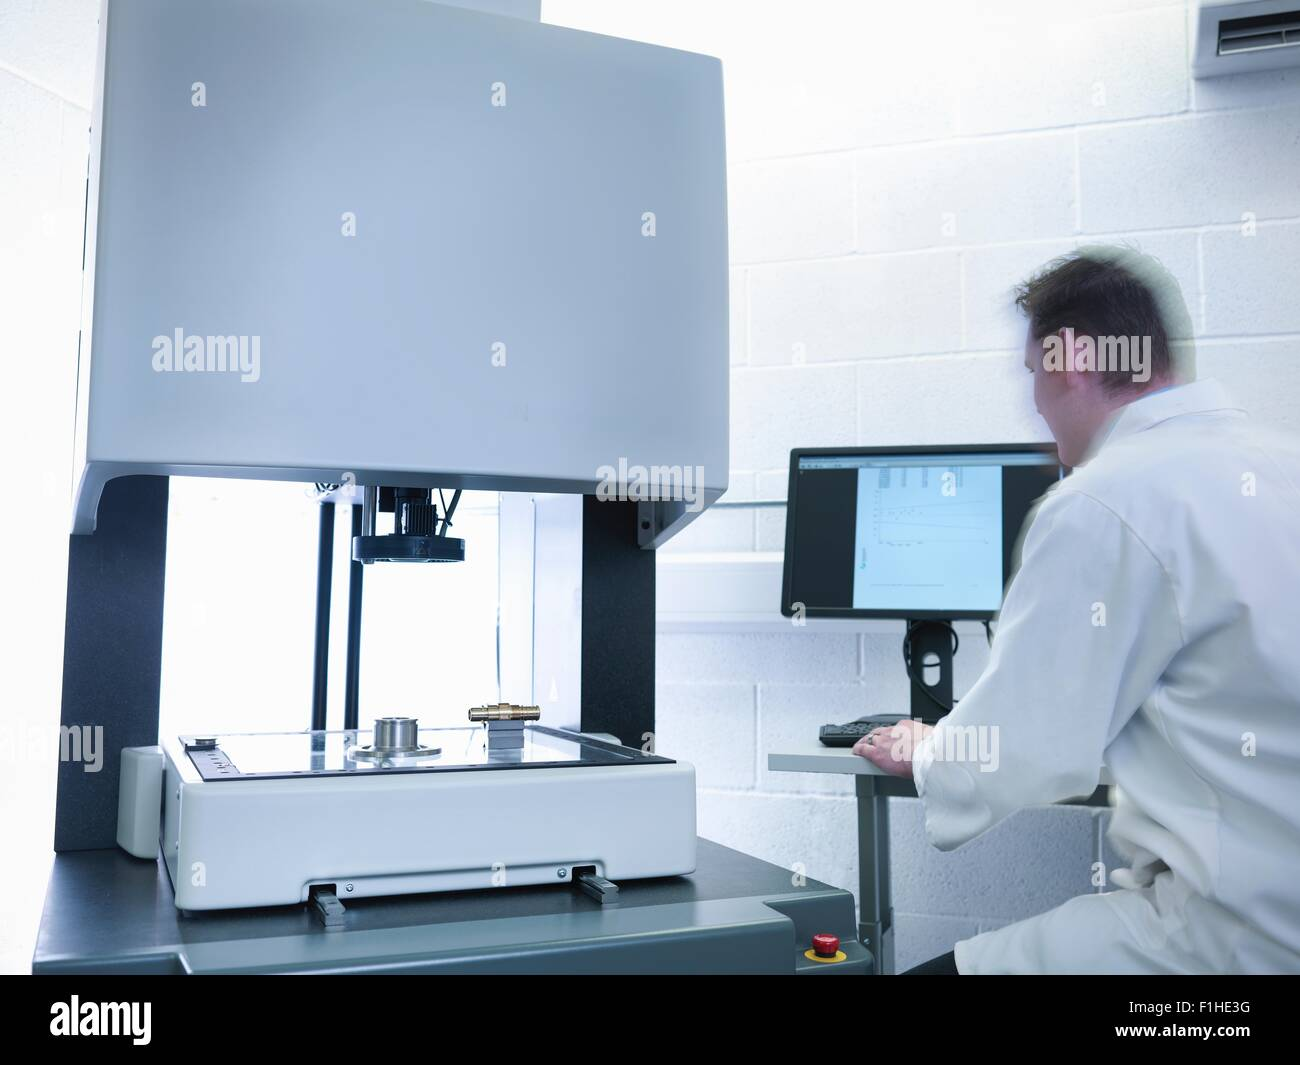 Engineer measuring parts in quality control room - Stock Image